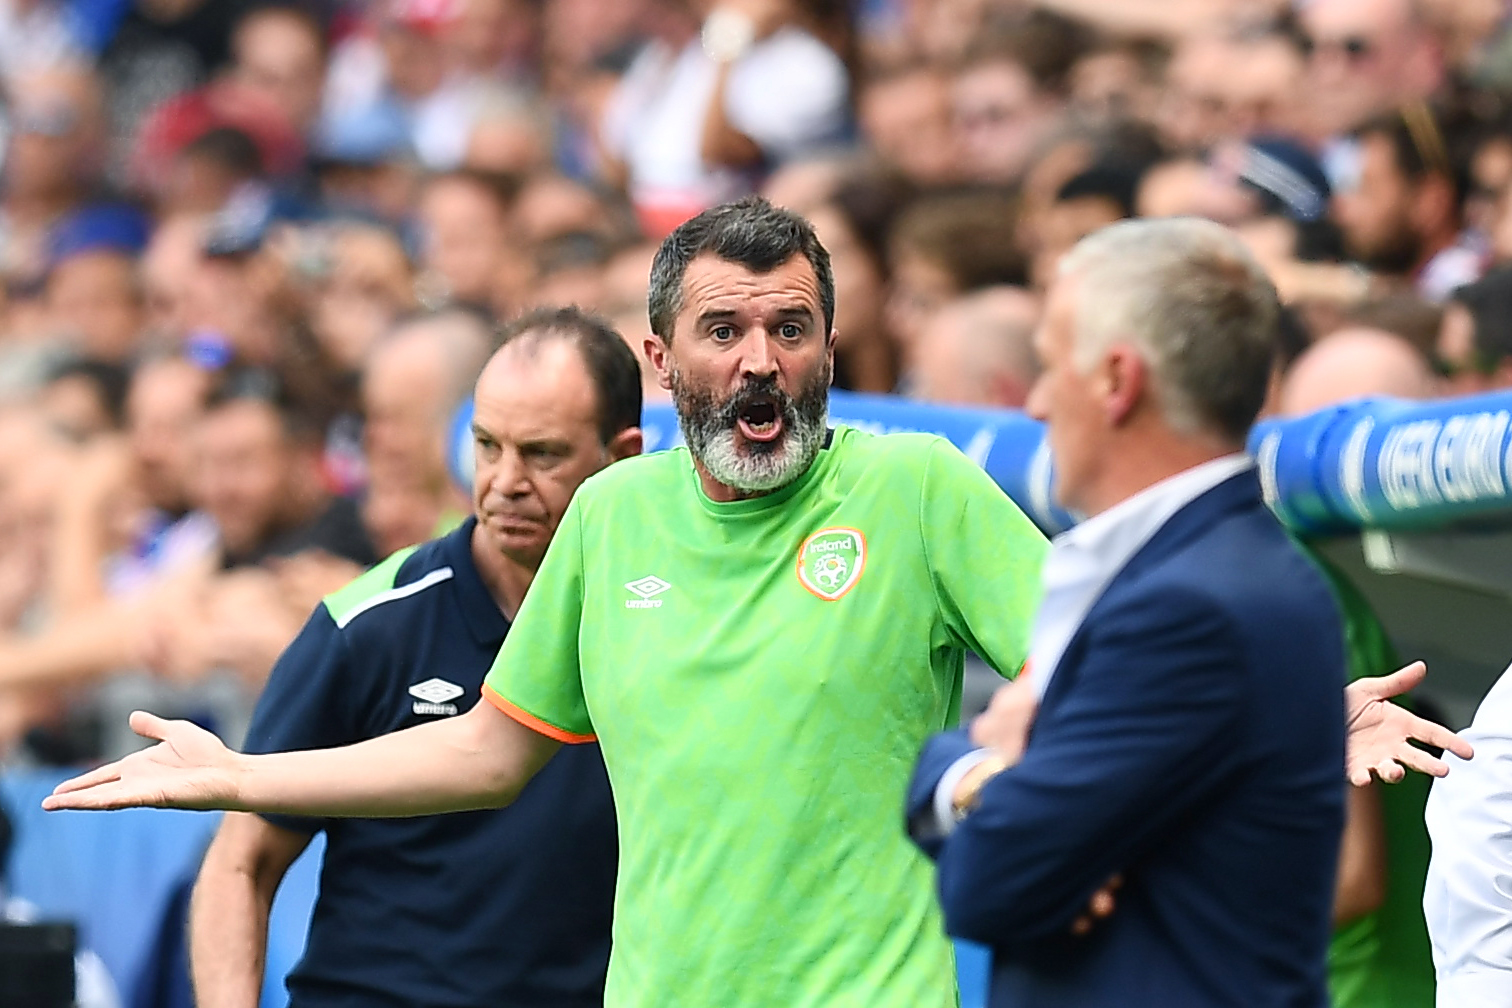 Roy Keane criticises Wales after Euro 2016 semi-final defeat to Portugal